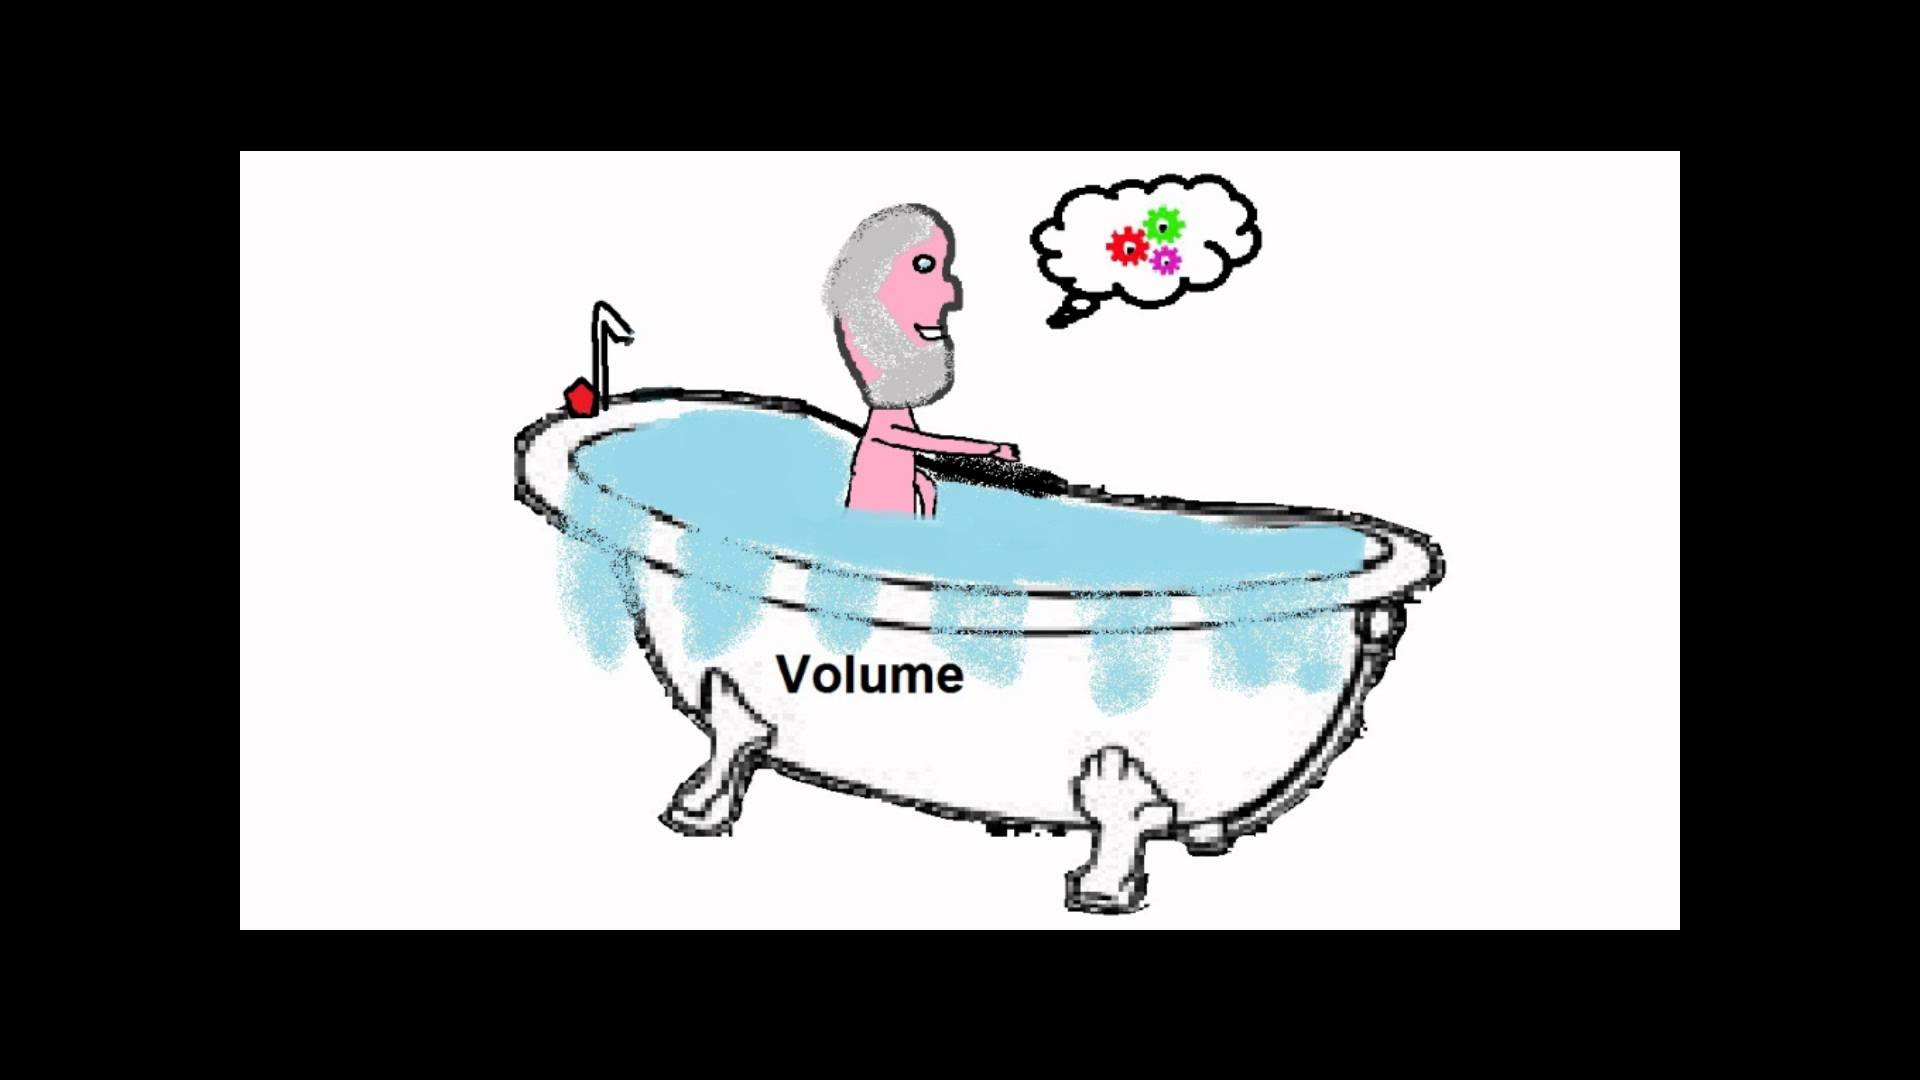 Bathtub Clipart Liquid Volume Bathtub Liquid Volume